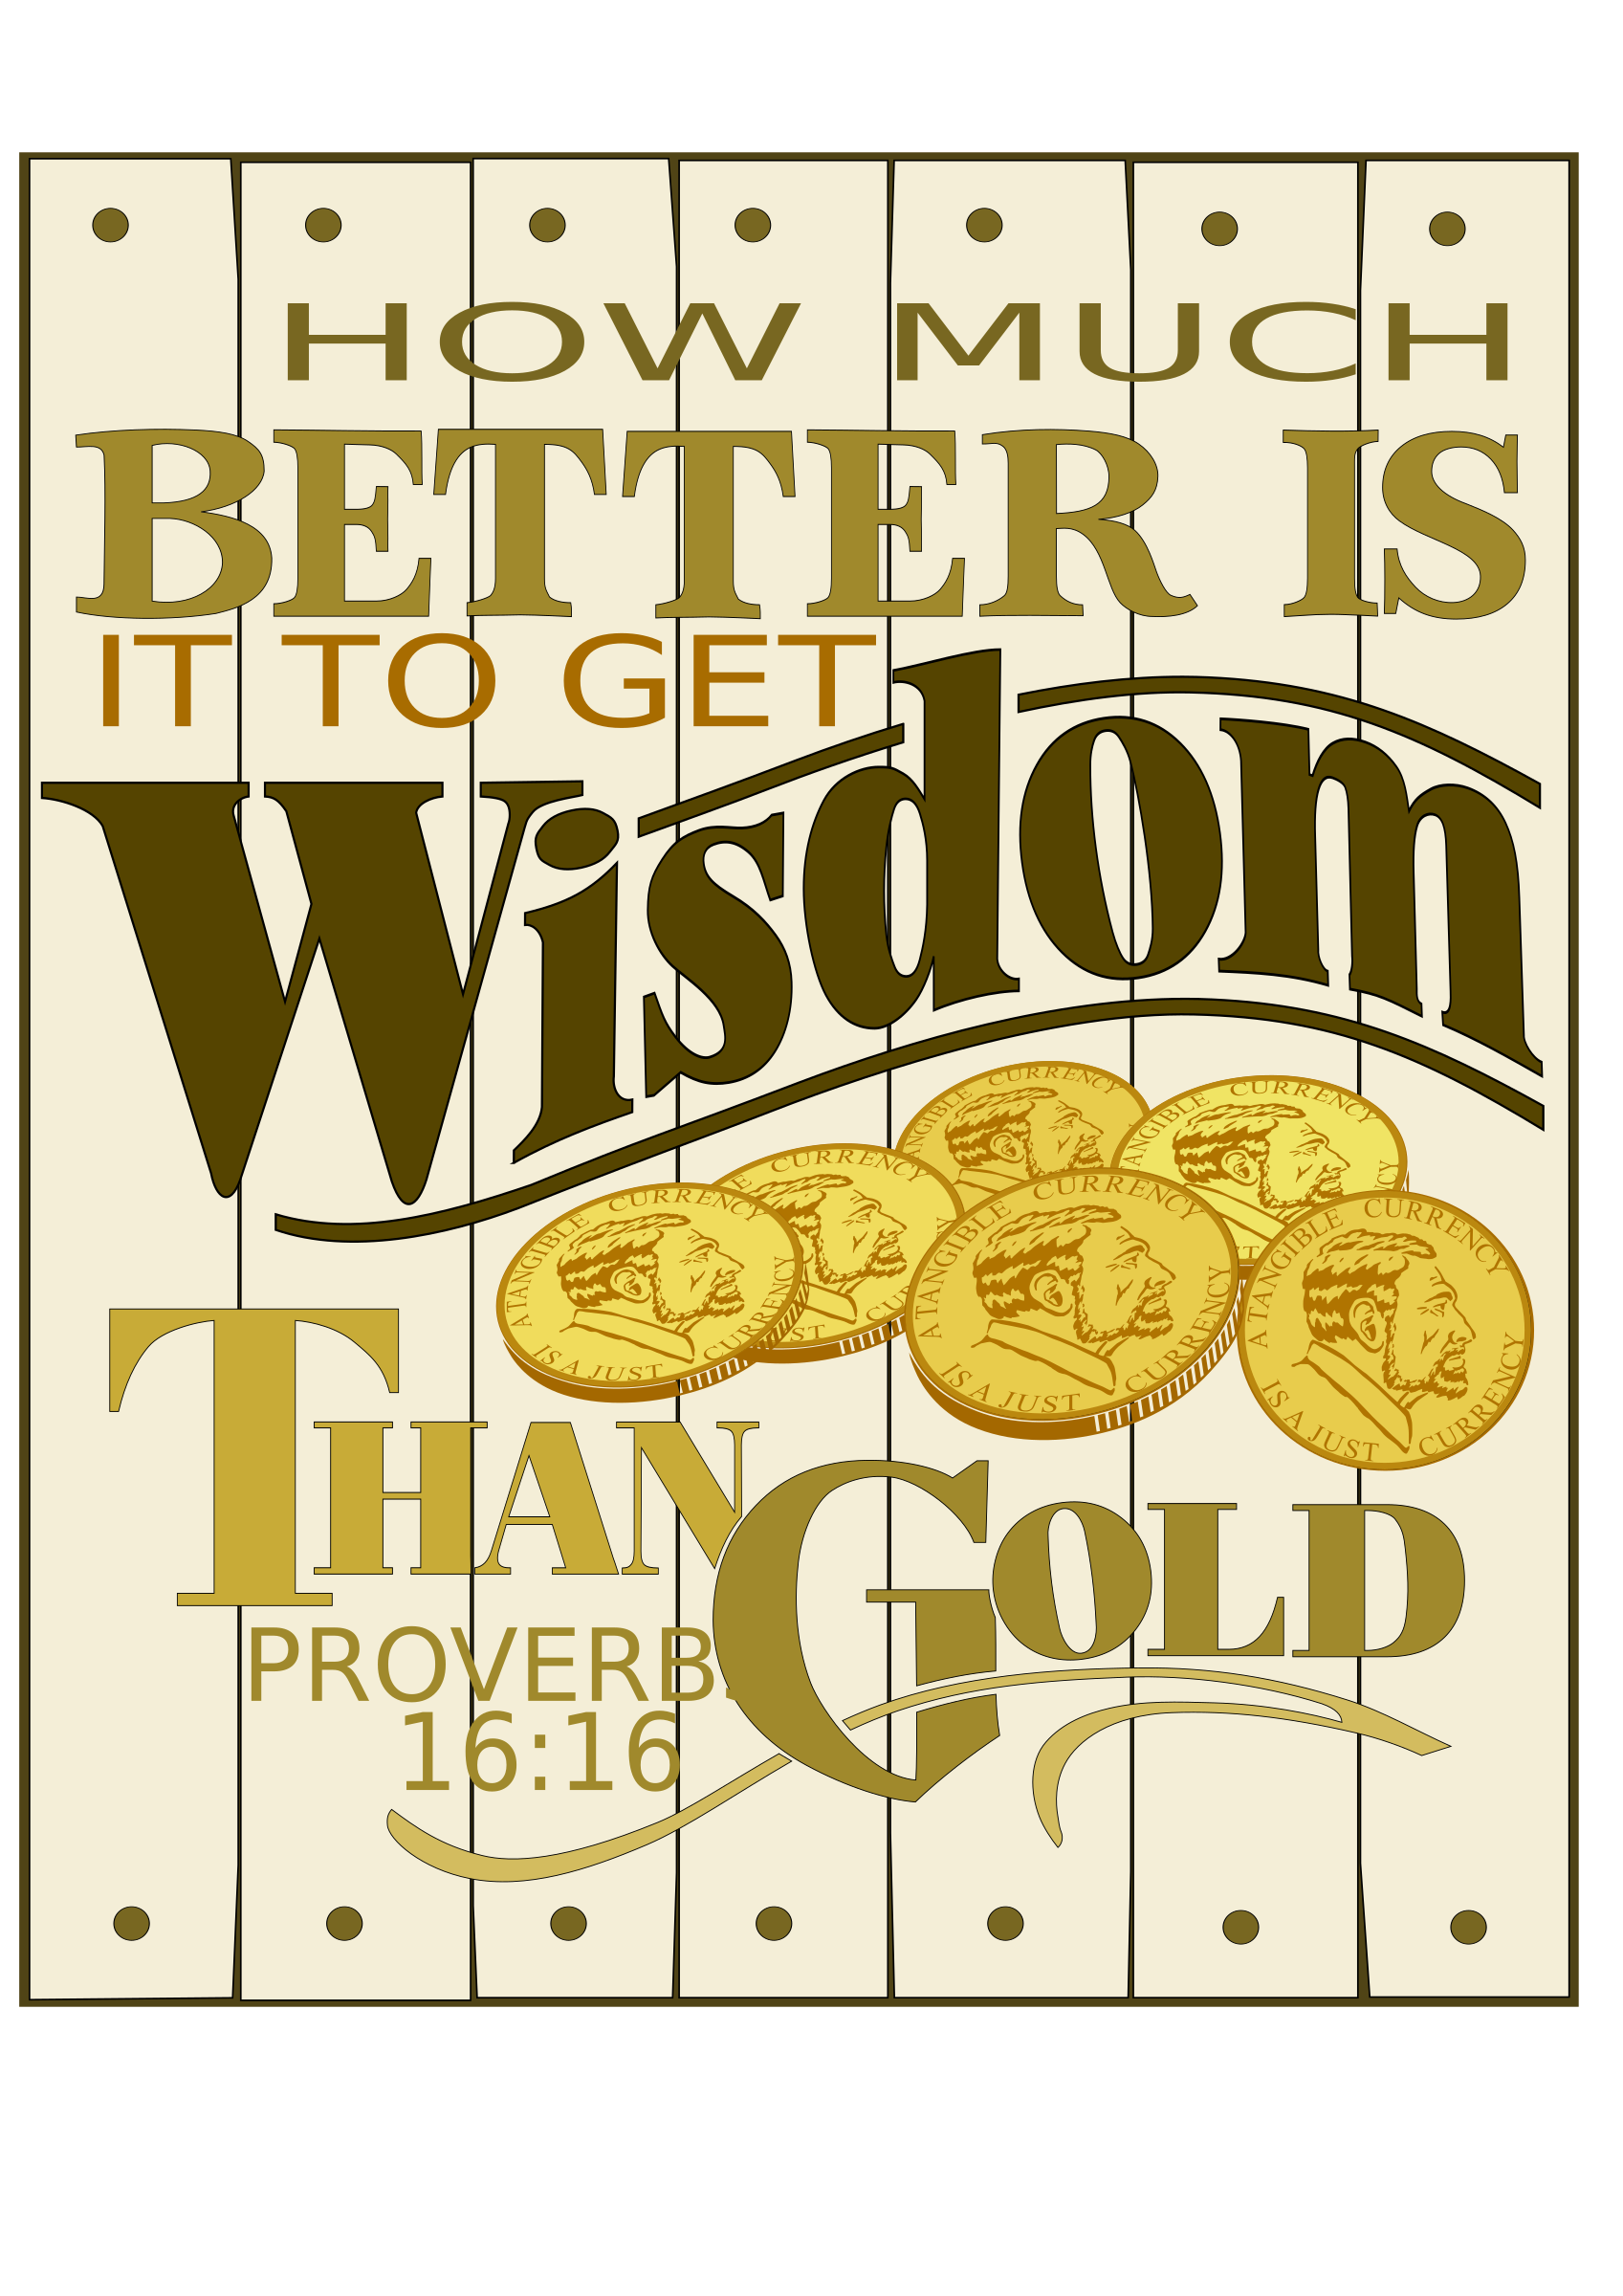 Wisdom Proverbs 16 for plotters by Raker Tooth